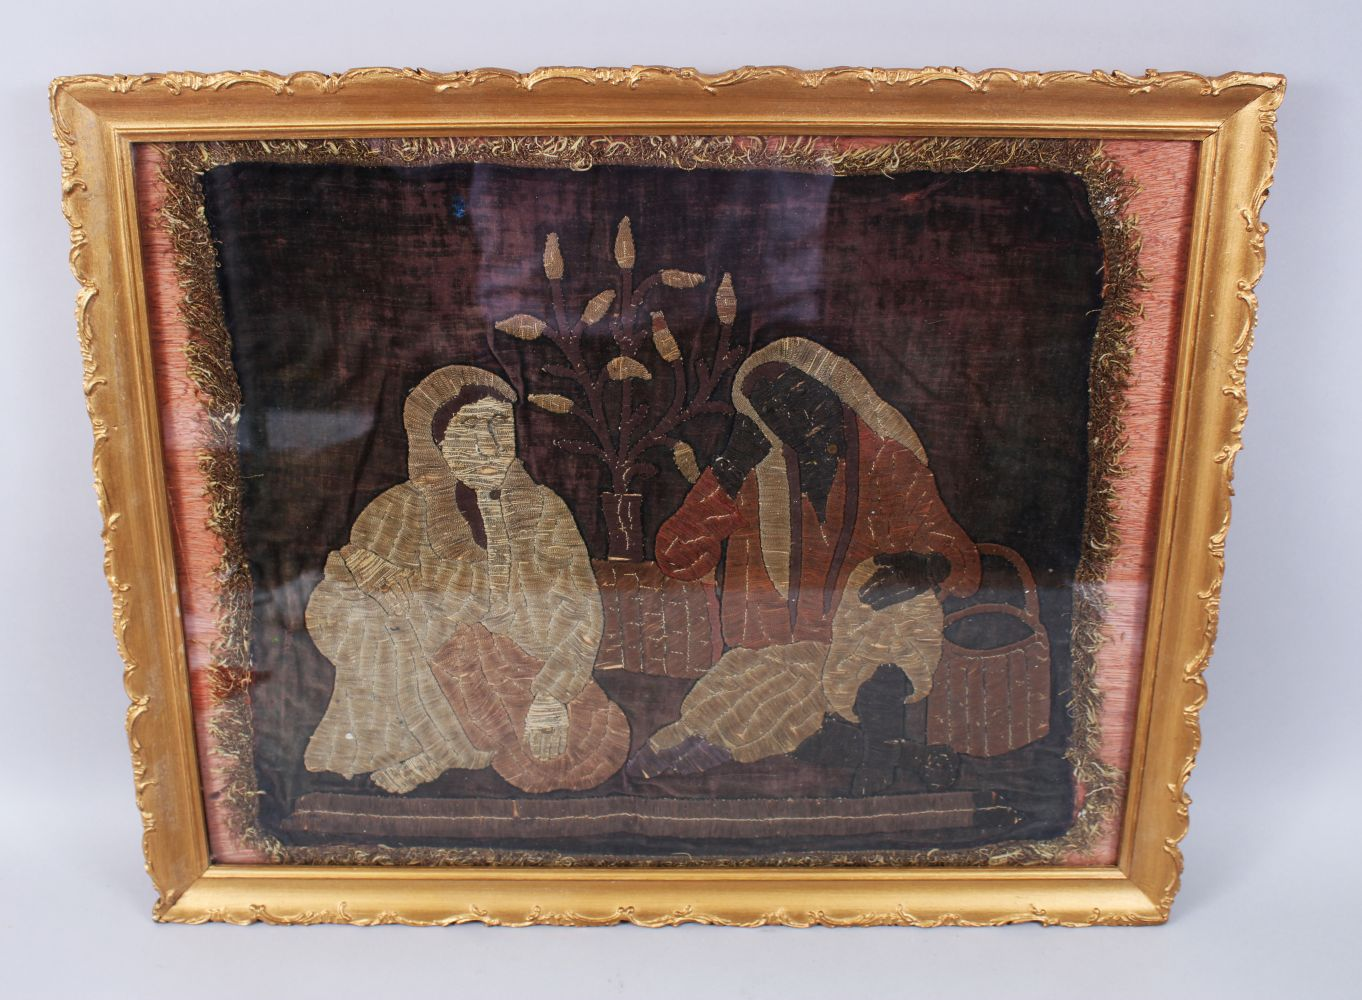 Lot 17 - A 19TH CENTURY OTTOMAN TURKISH EMBROIDED PICTURE OF TWO LADIES sitting with a vase of plants between